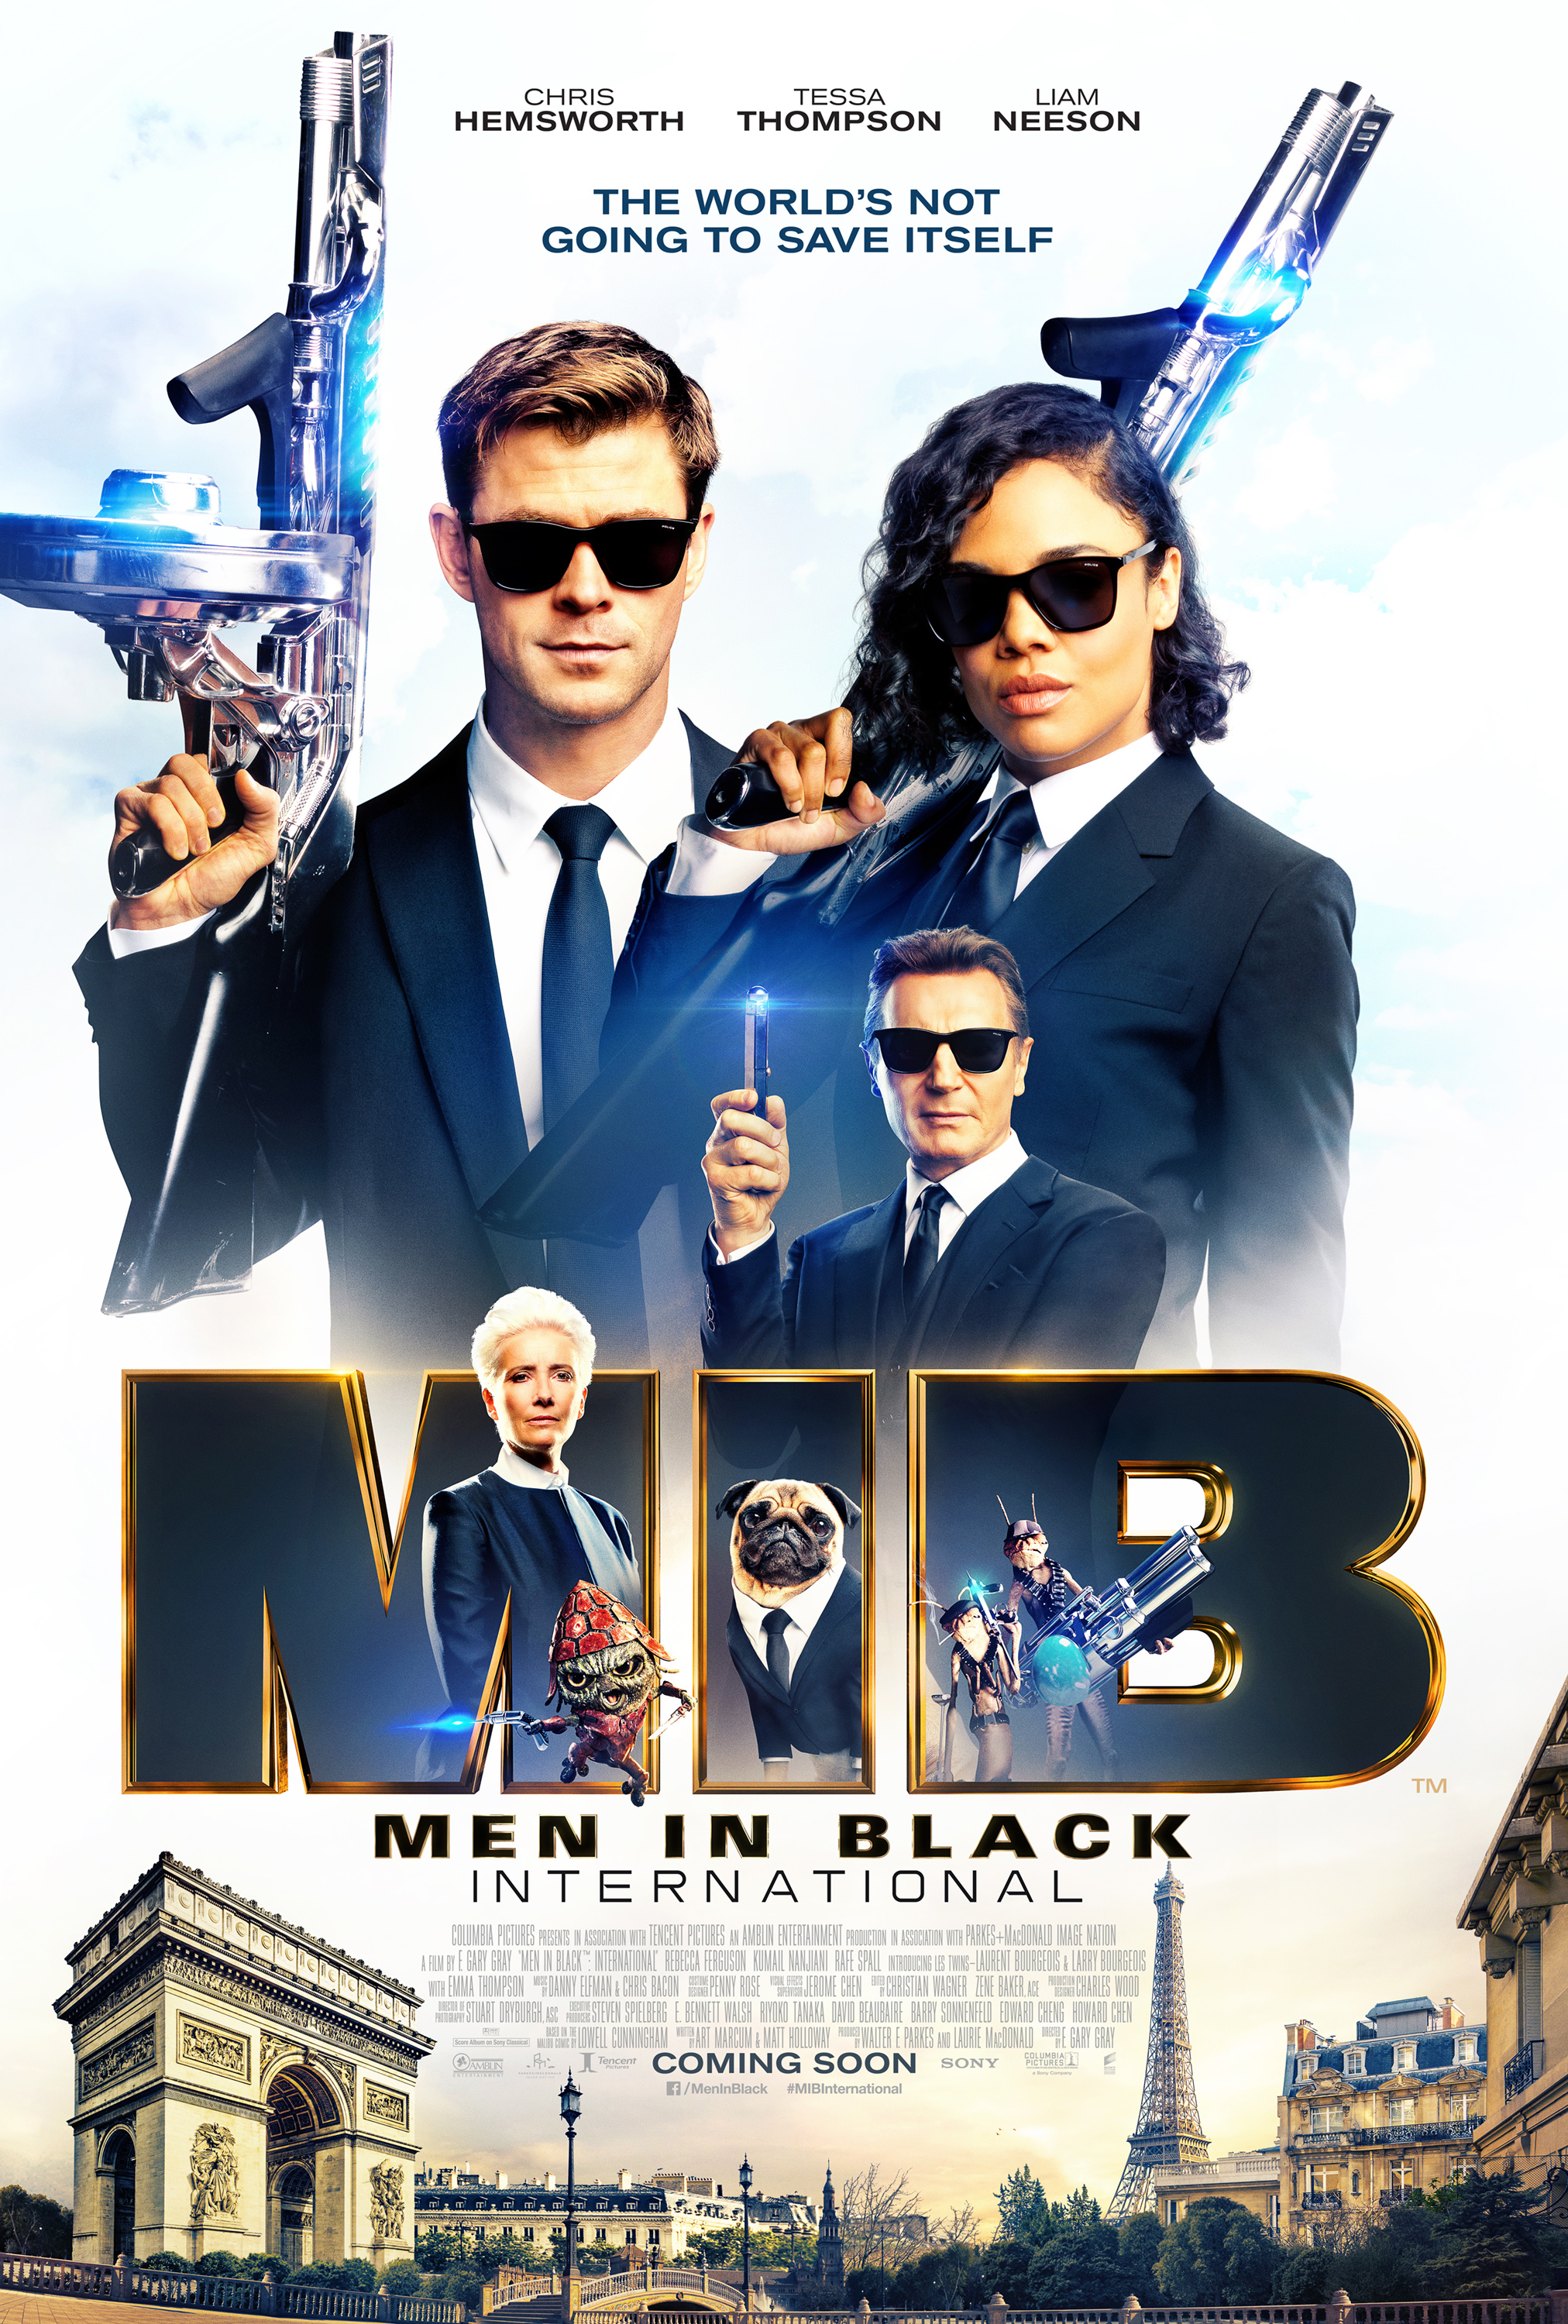 Men in black full movie online free